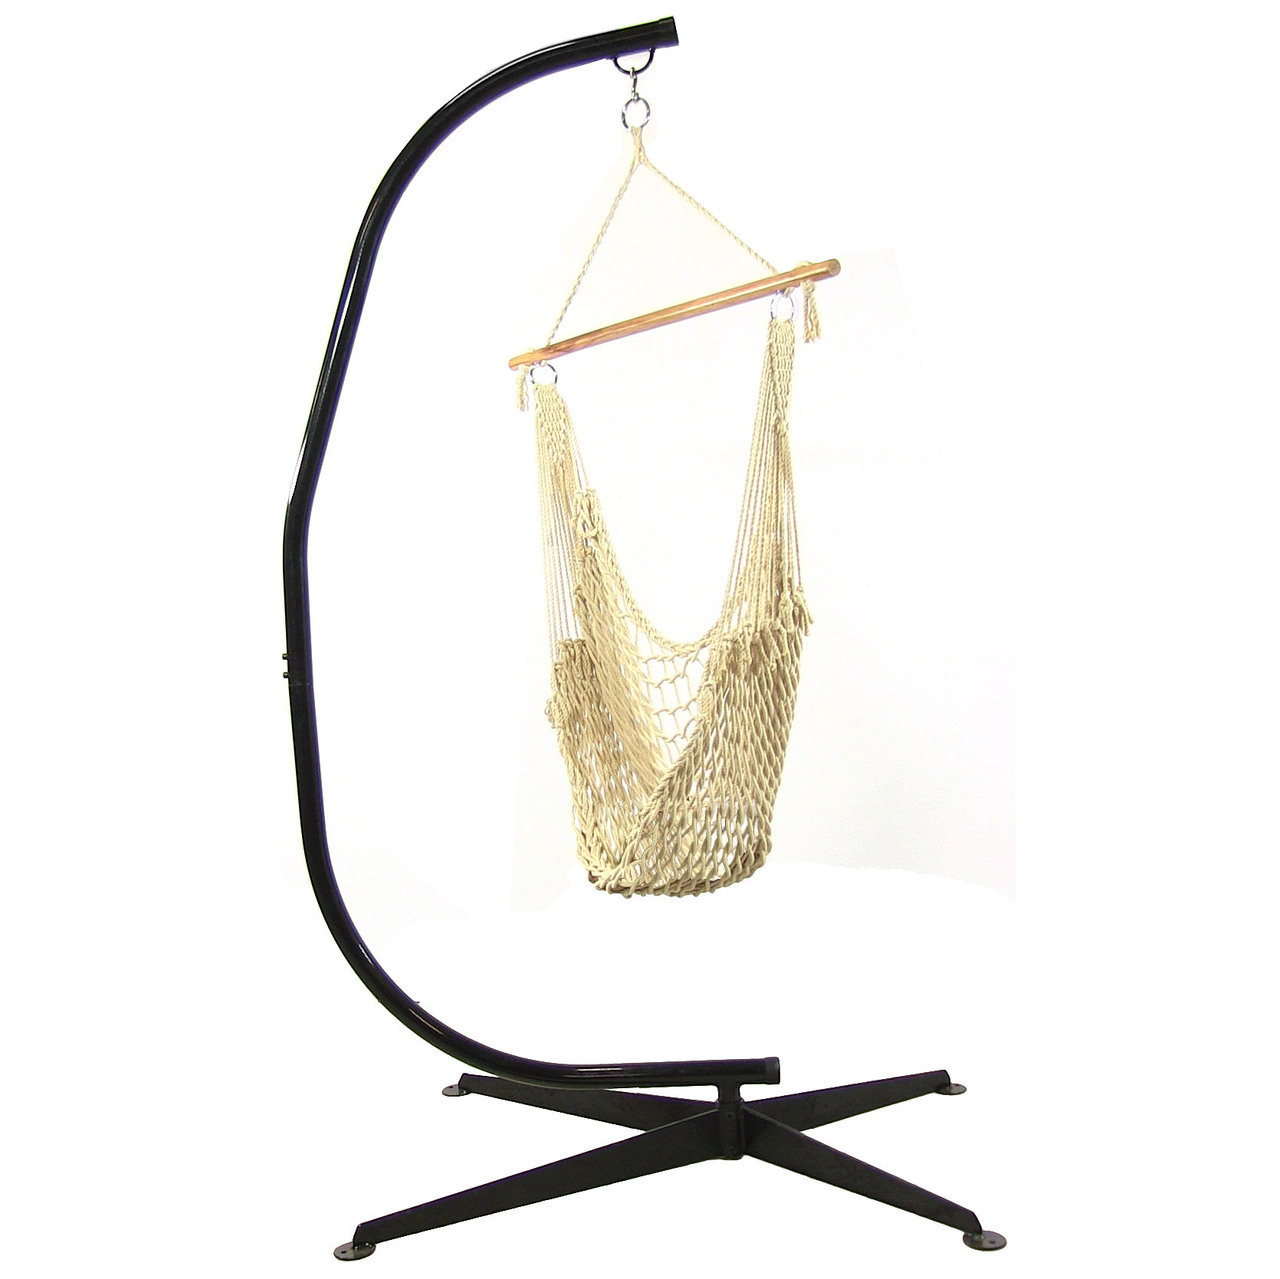 Sunnydaze Cotton Rope Hammock Chair w/Spreader Bar & Stand ...